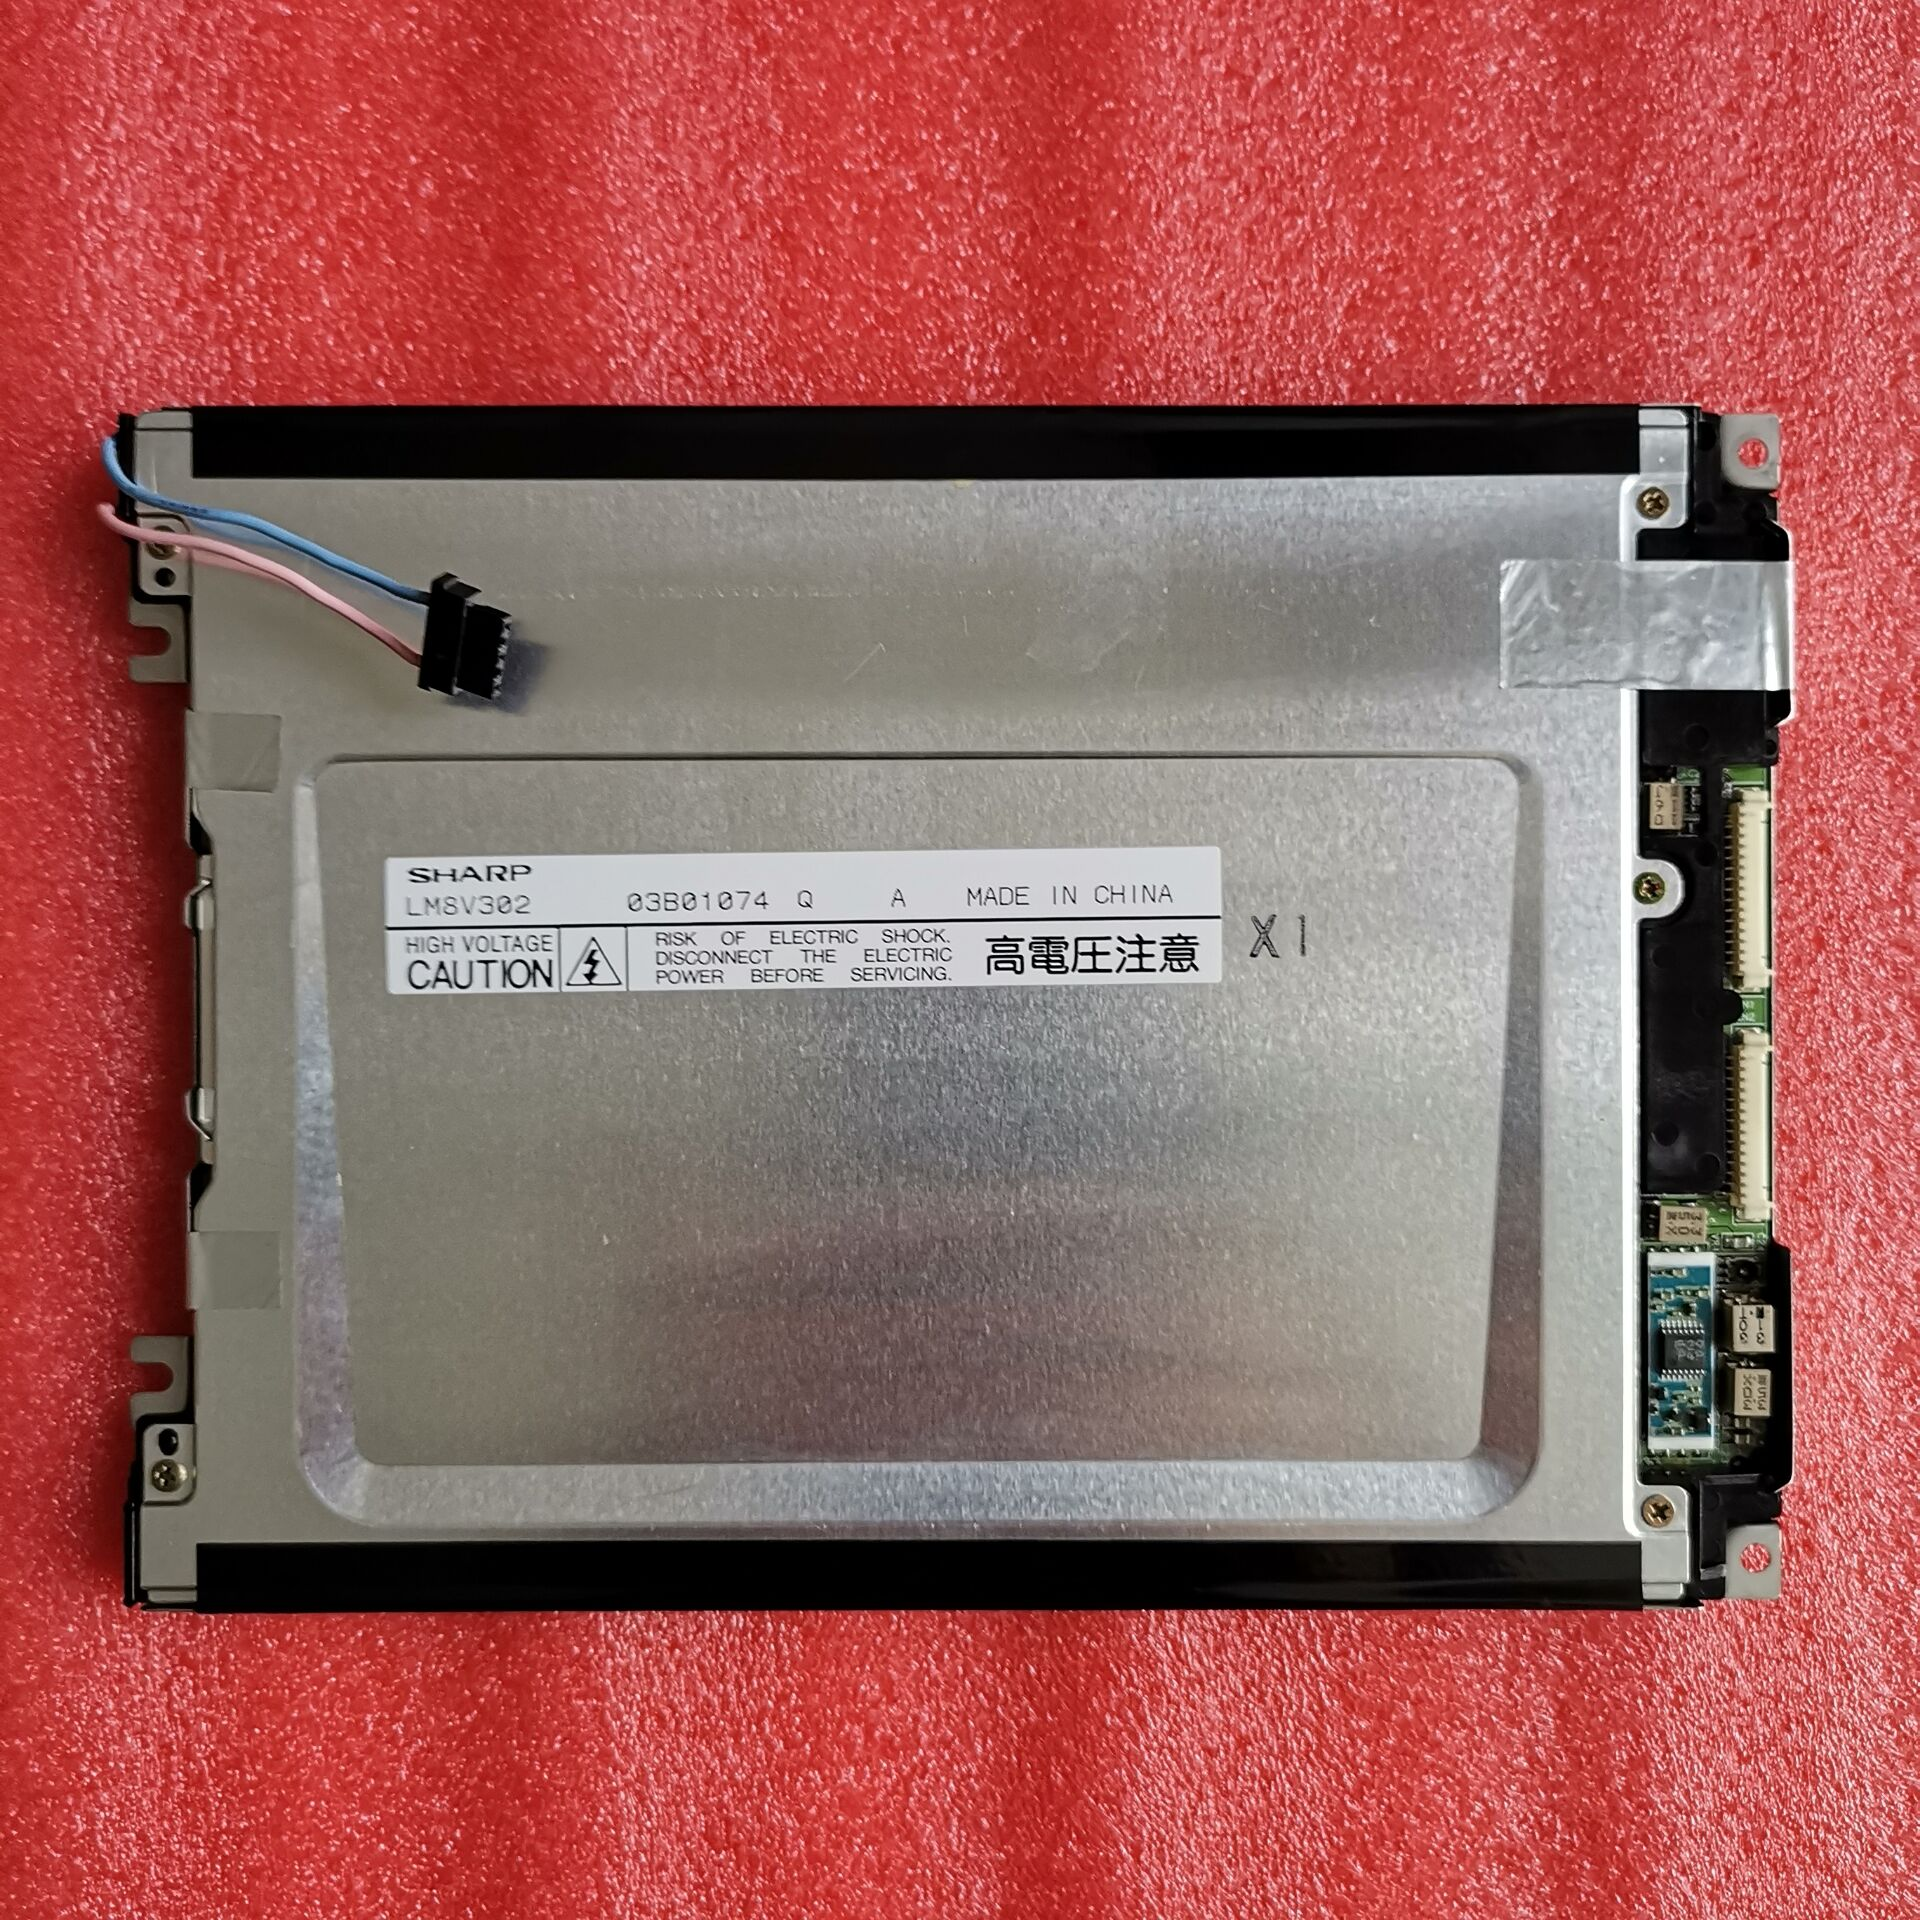 LCD LM8V302R NEW for industrial machine use 90 days warranty